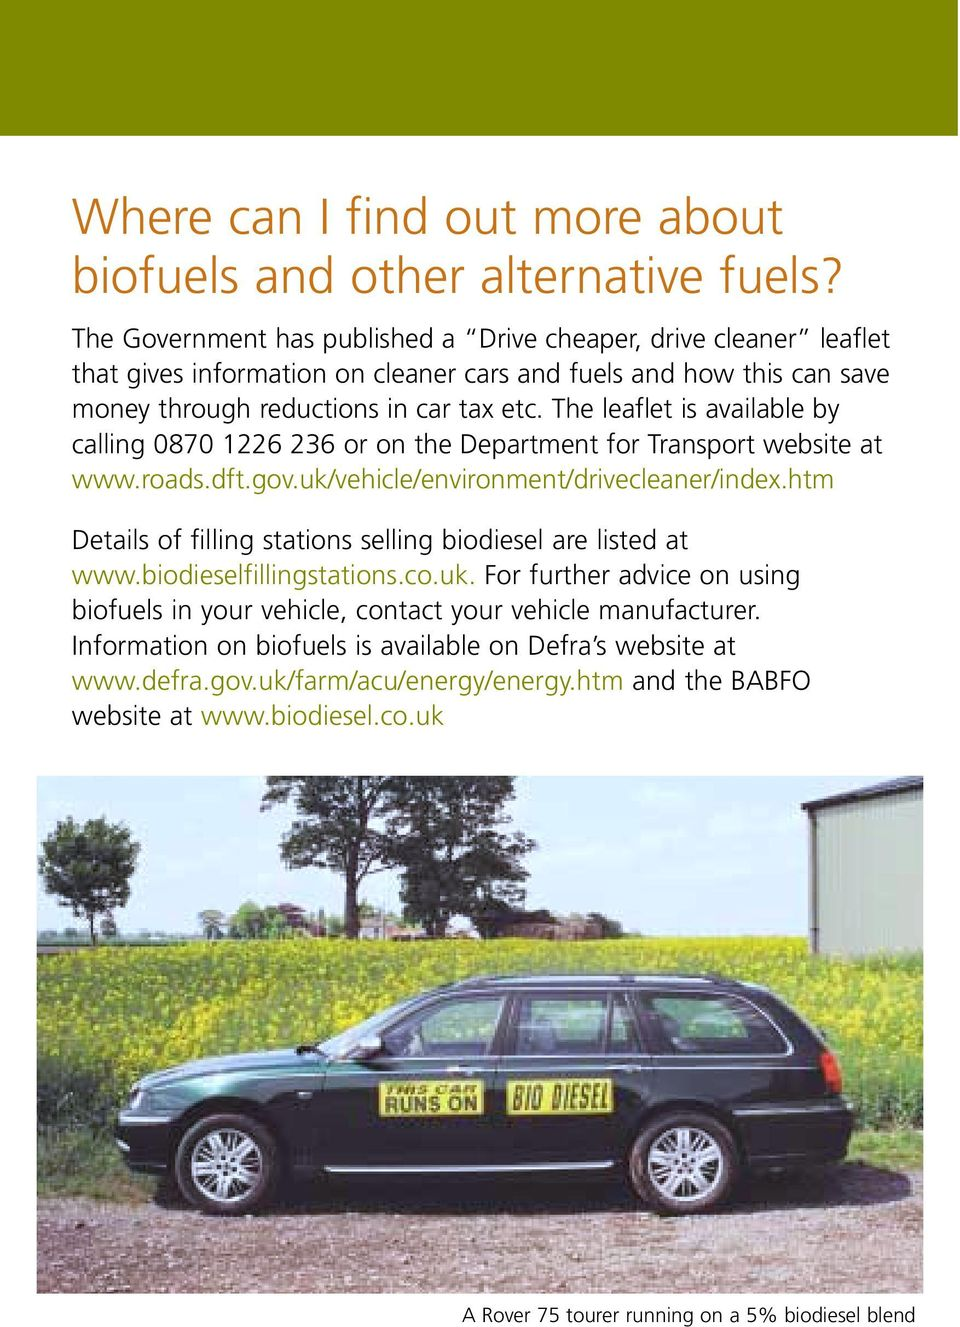 The leaflet is available by calling 0870 1226 236 or on the Department for Transport website at www.roads.dft.gov.uk/vehicle/environment/drivecleaner/index.